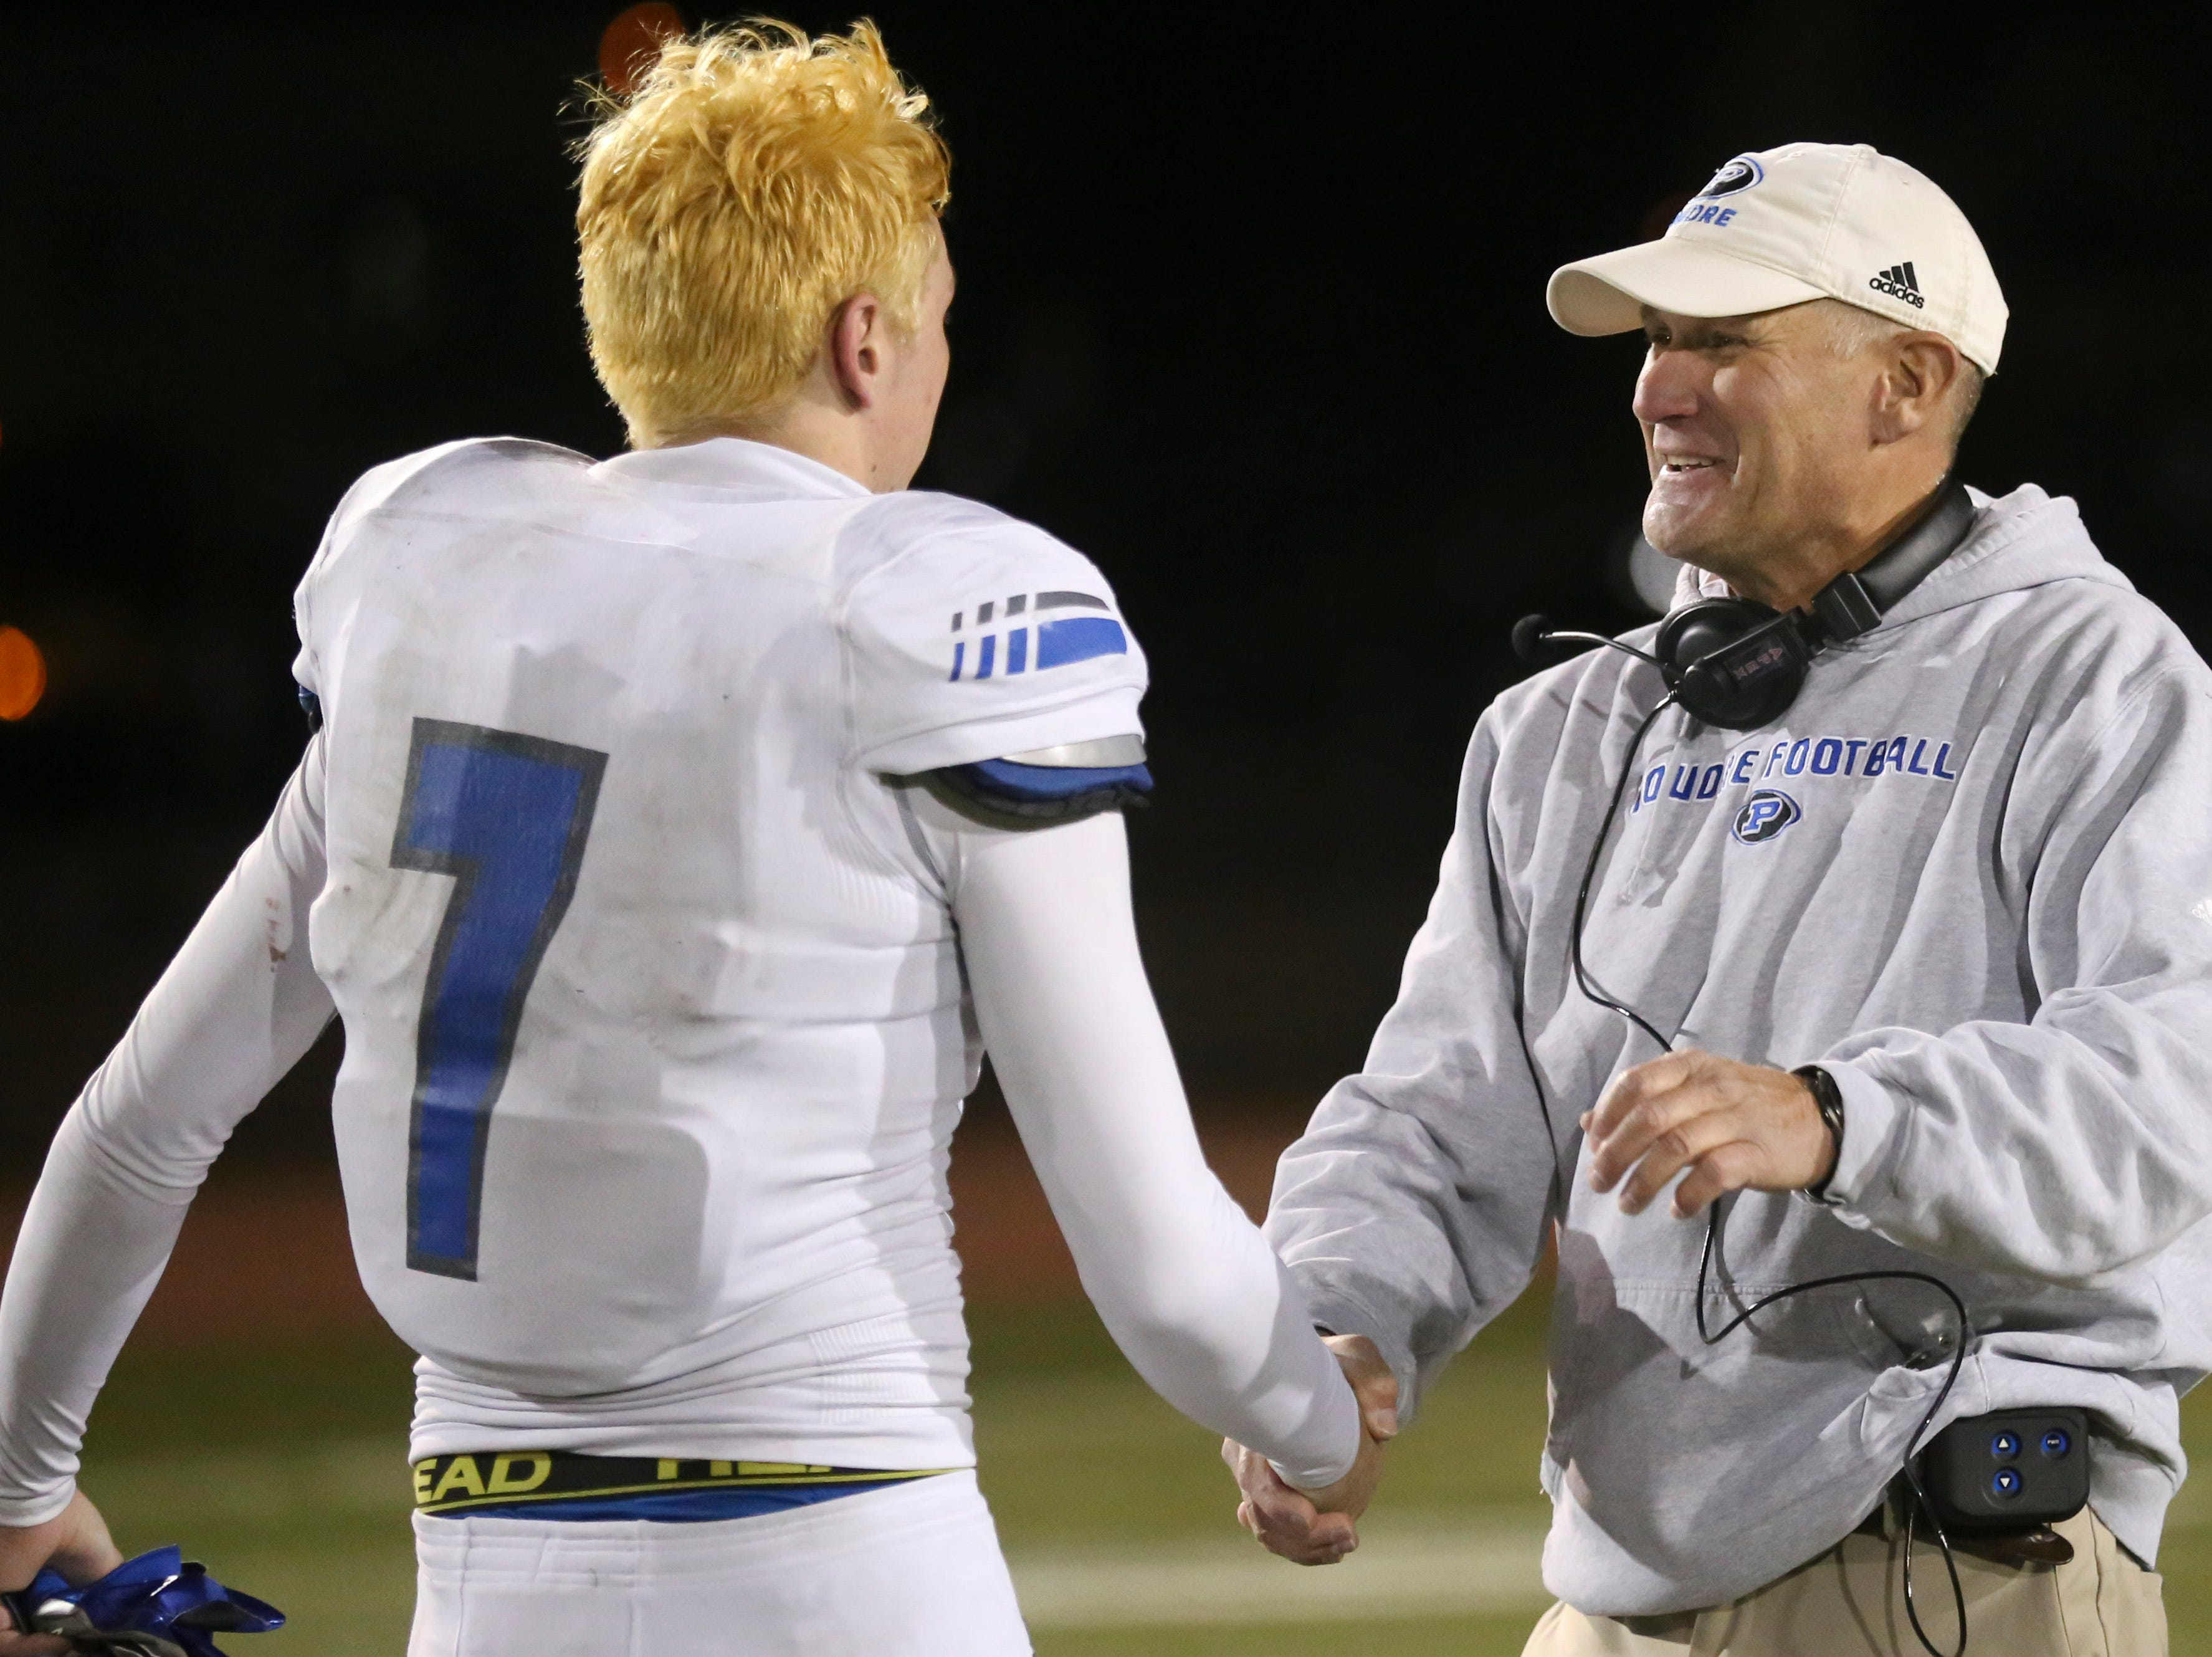 Poudre High School's Josiah Stribling speaks to his head coach, Marty McVicker, after being defeated by Cherokee Trail High School in a double overtime playoff game on Friday evening.